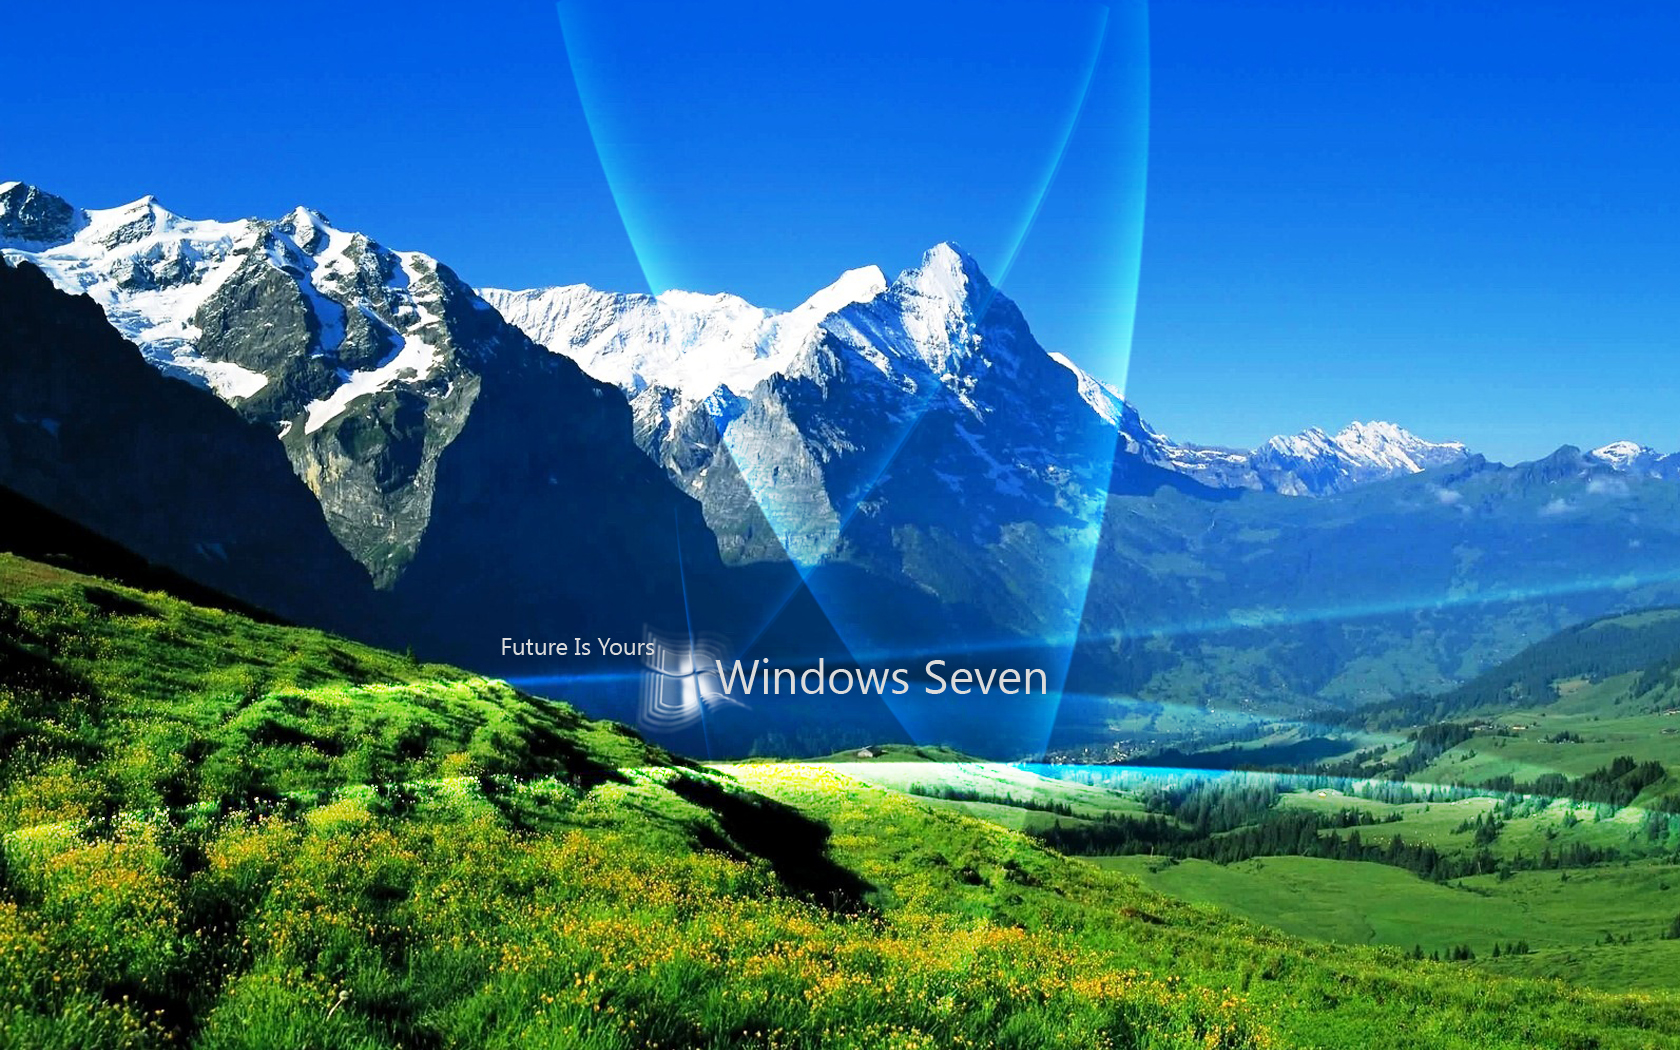 Windows 7   Future Is Yours Wallpaper Geekpedia 1680x1050